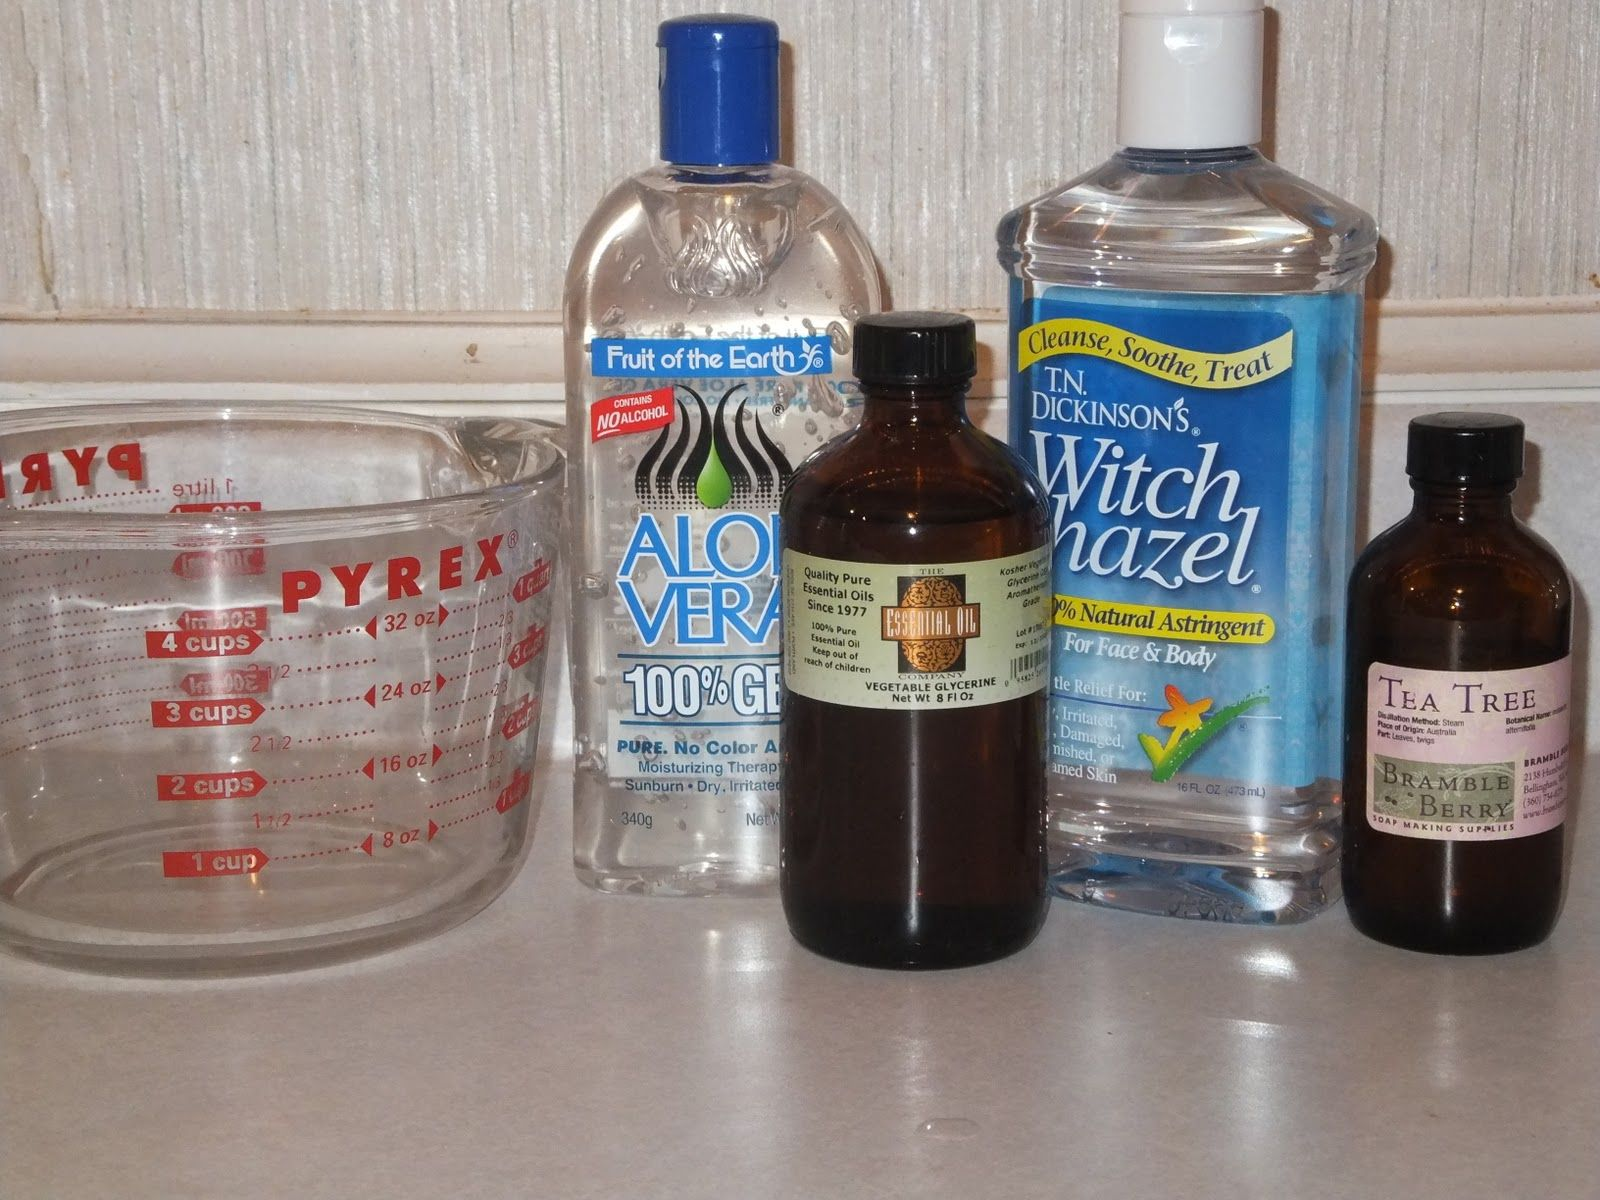 Pin on DIY cleaning products